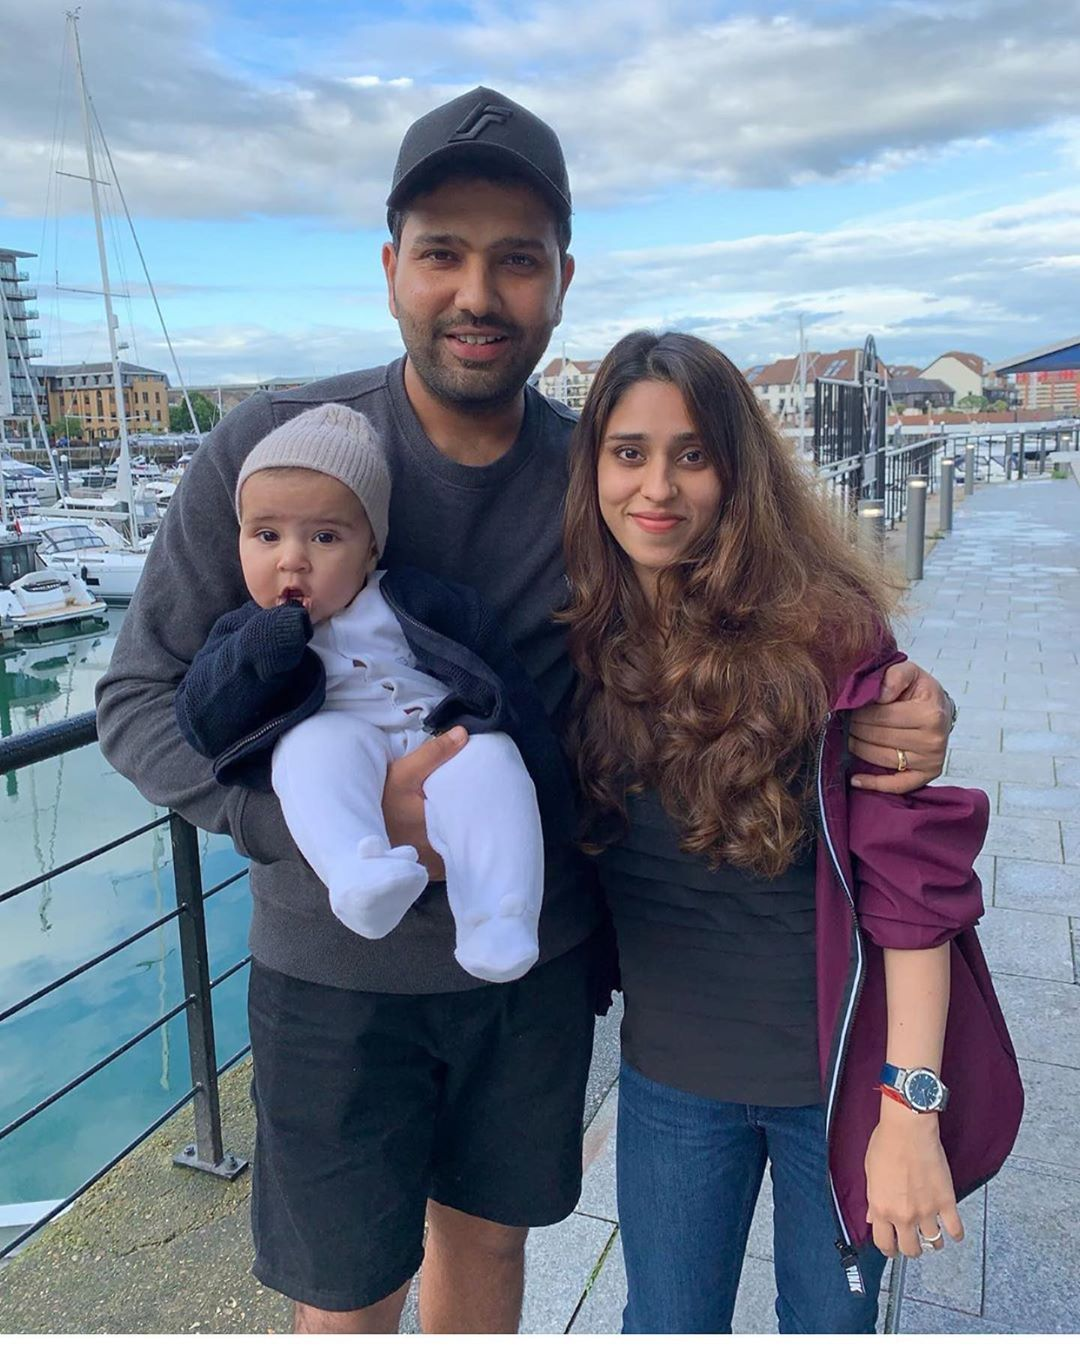 A Morning cannot be cuter than this, Rohit and family ️